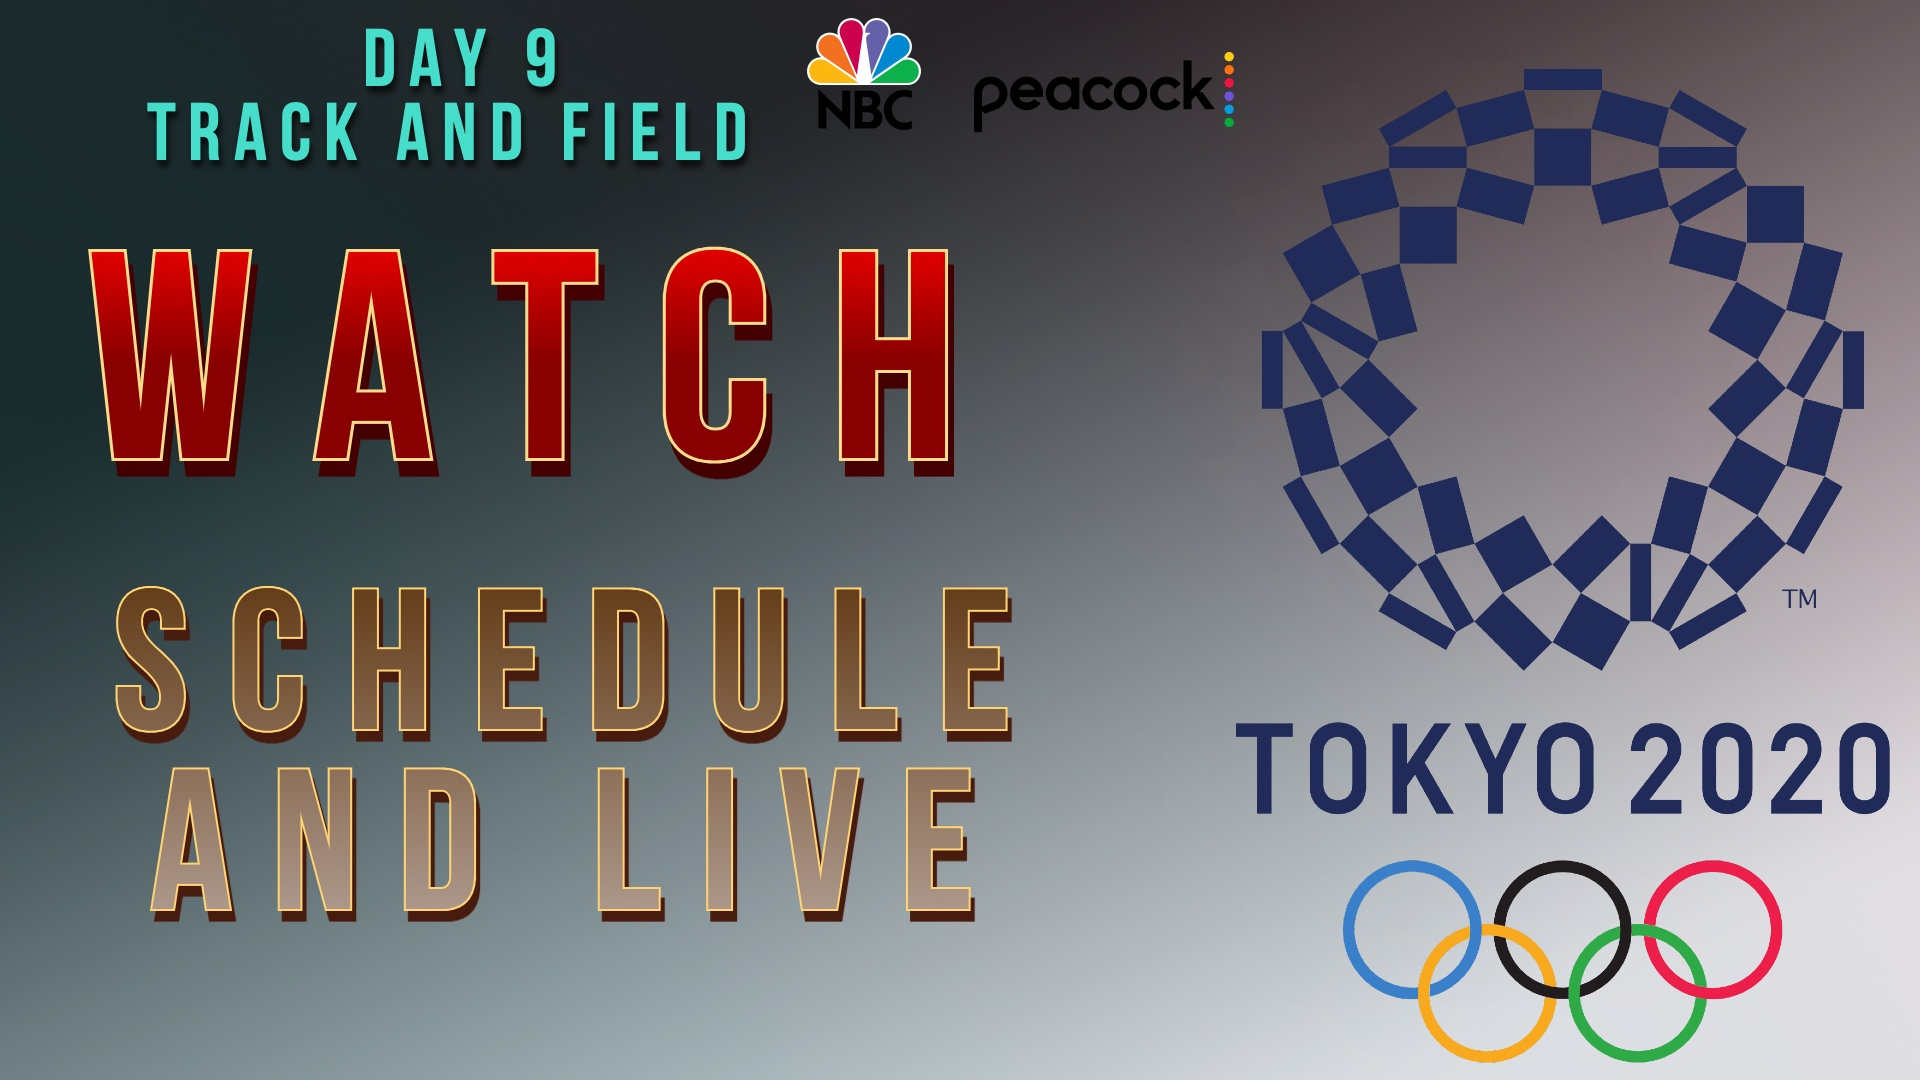 Tokyo-2020-Olympic-Games-Day-9